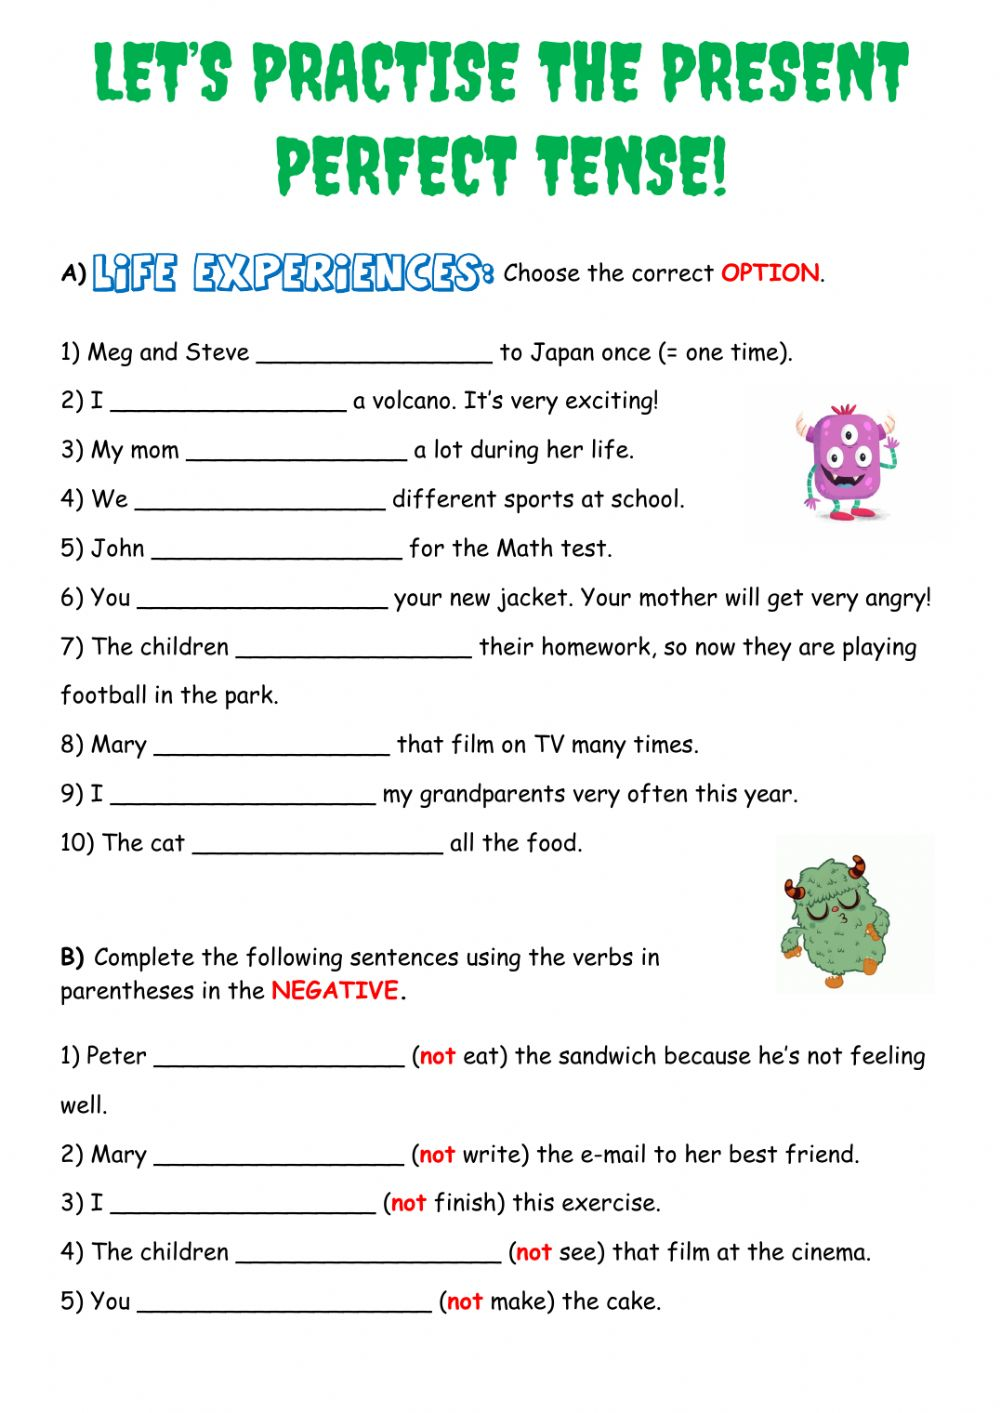 LET'S PRACTISE THE PRESENT PERFECT TENSE worksheet